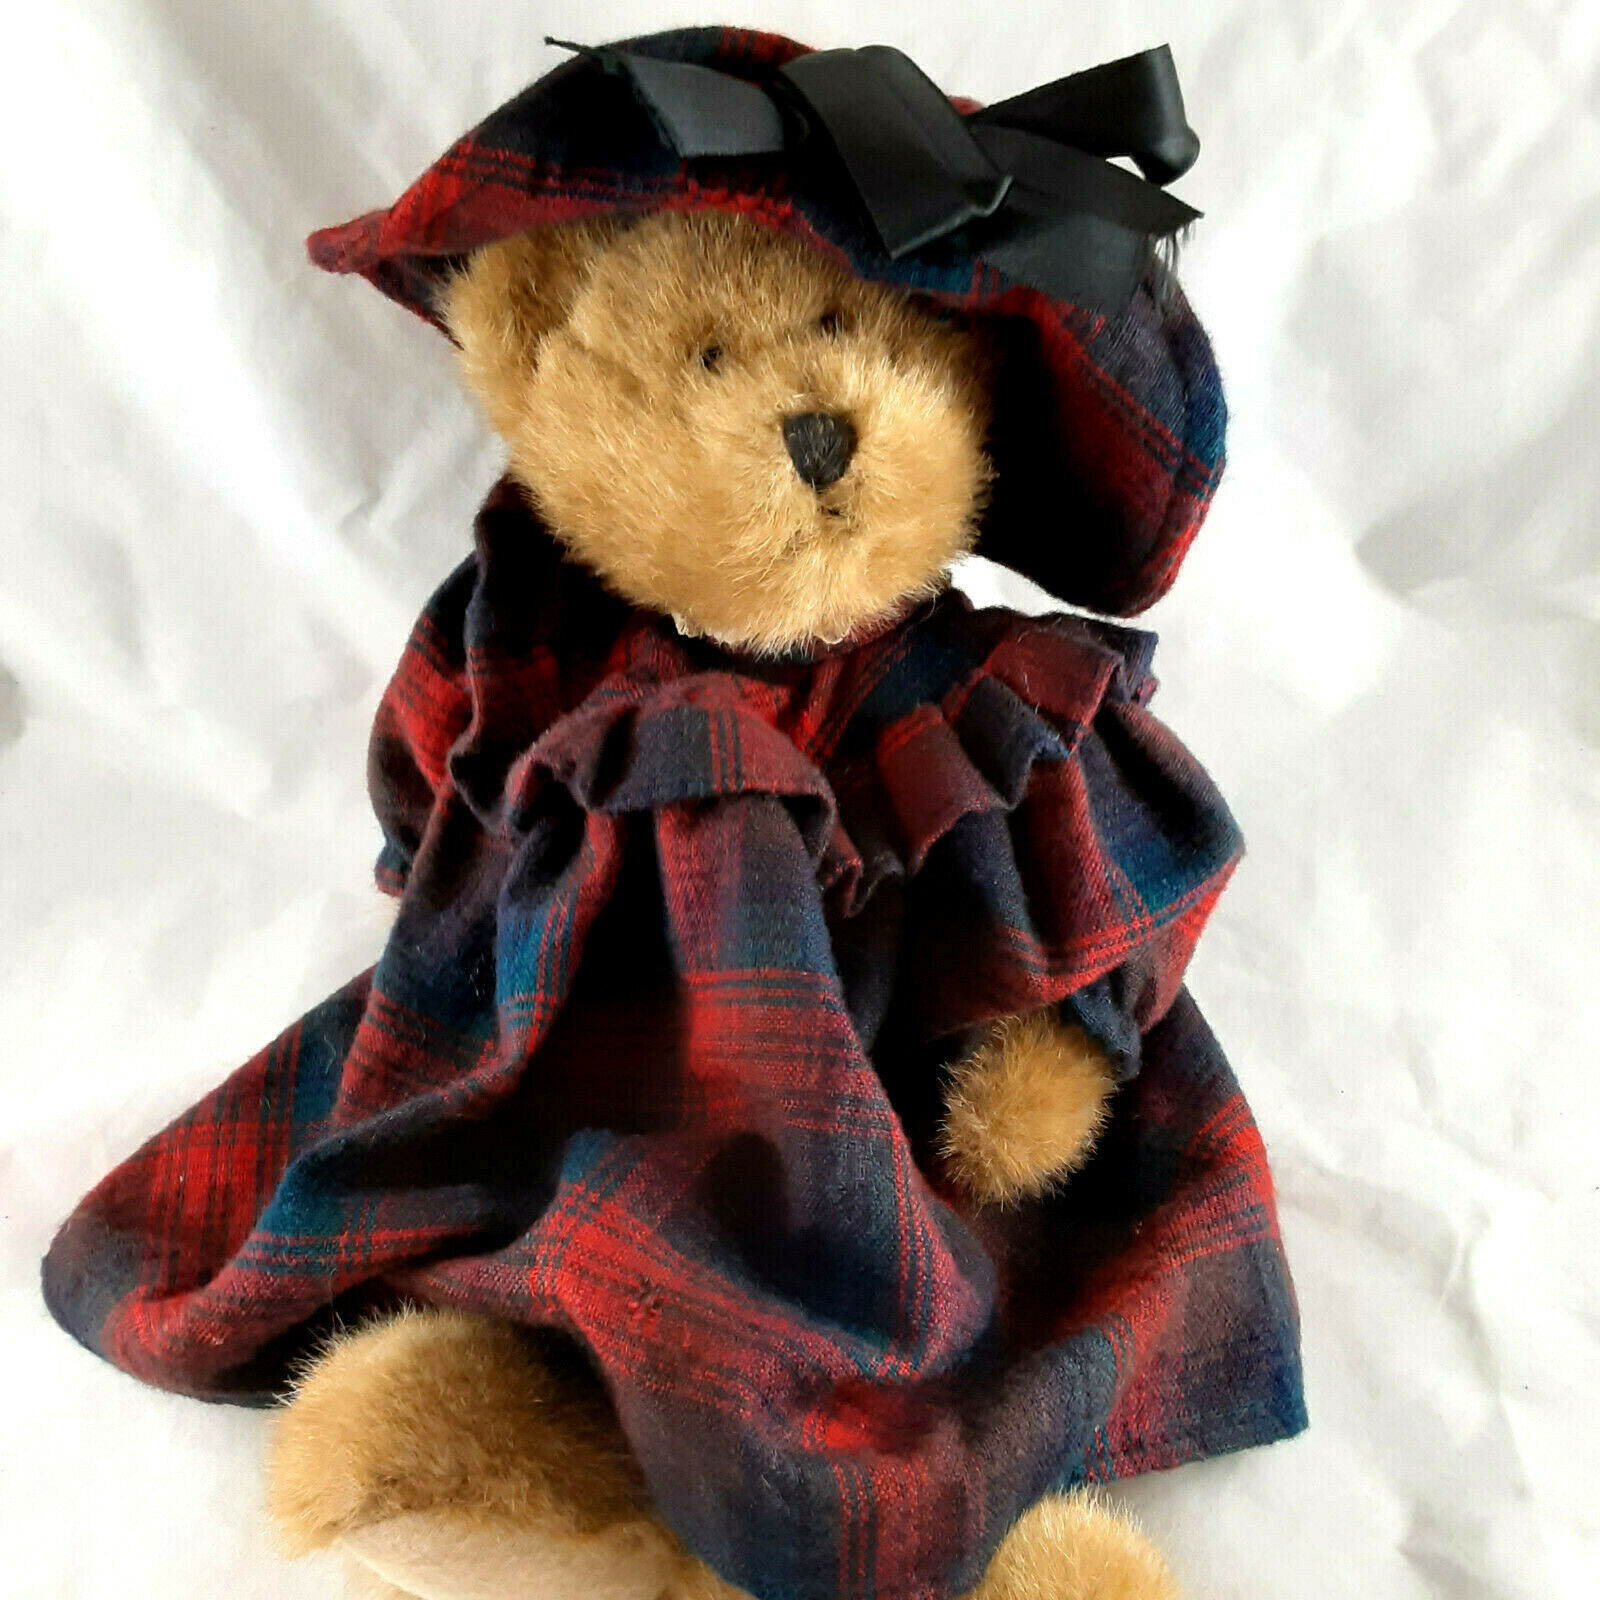 Primary image for Vintage Boyd's Collection Bear JB Bean Series Christmas Tartan Dress 1985-1997